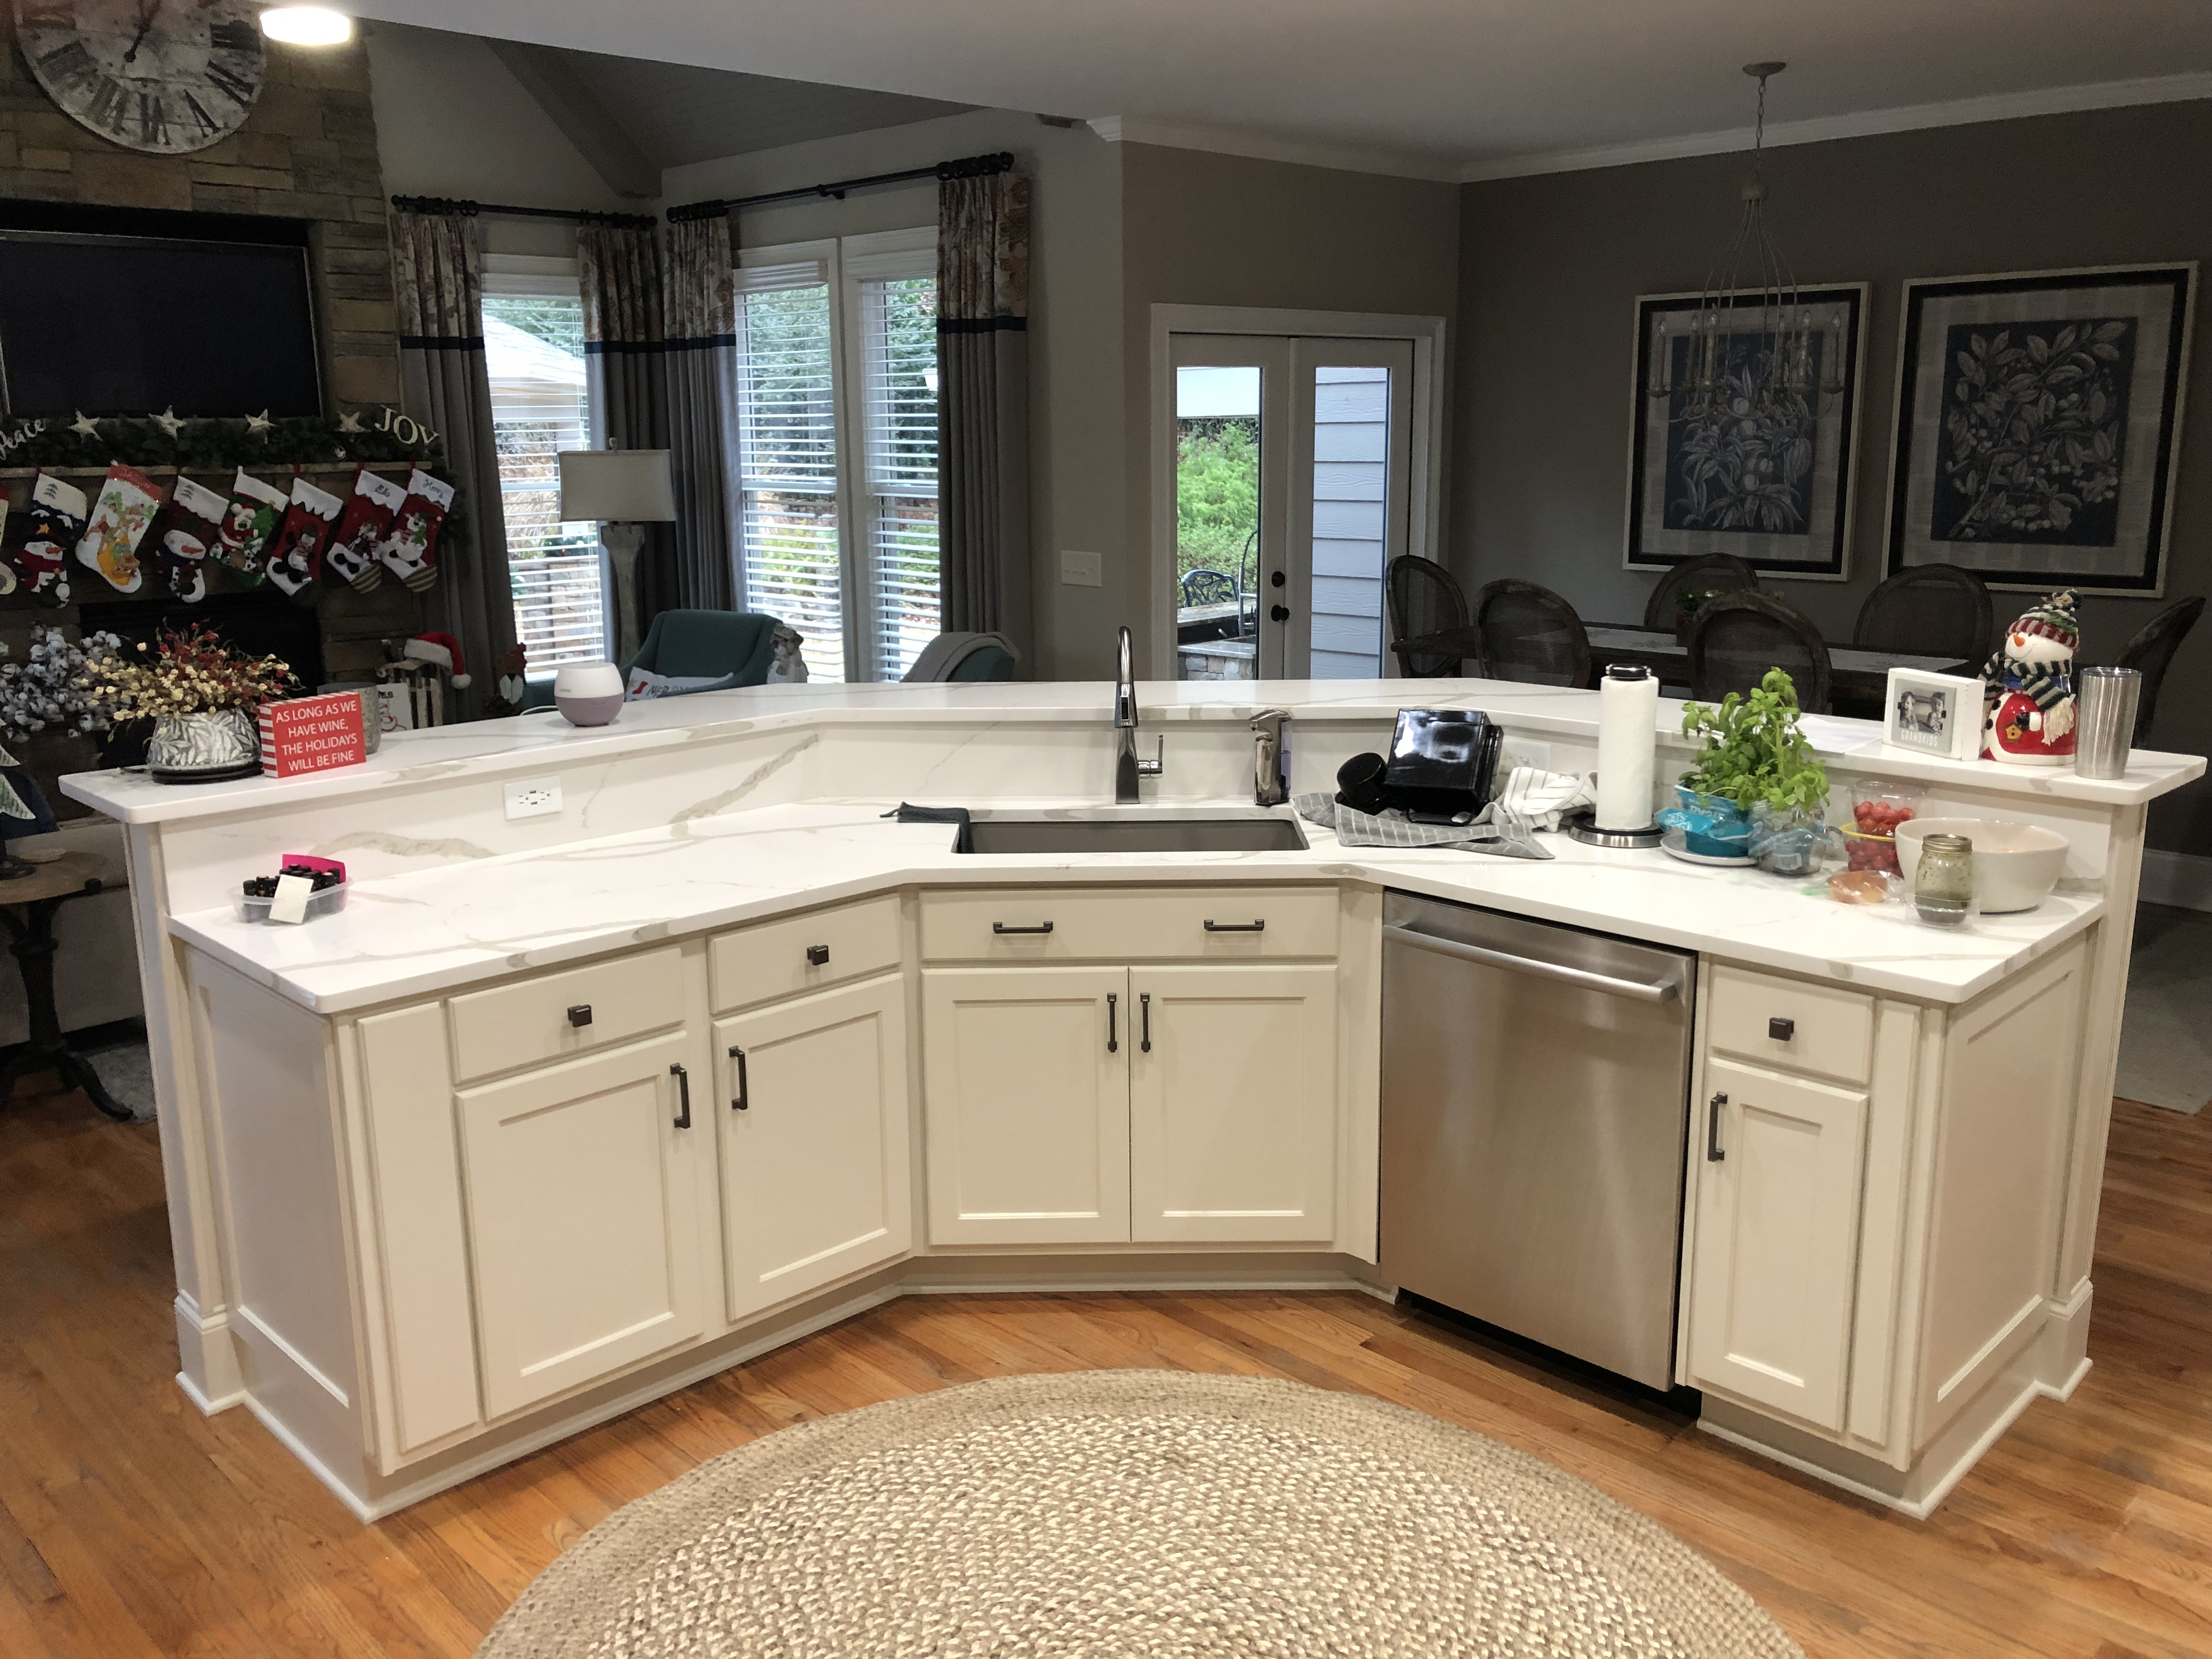 Kitchen Fronts of Georgia reviews | Kitchen Supplies at 3291 Laventure Dr - Chamblee GA